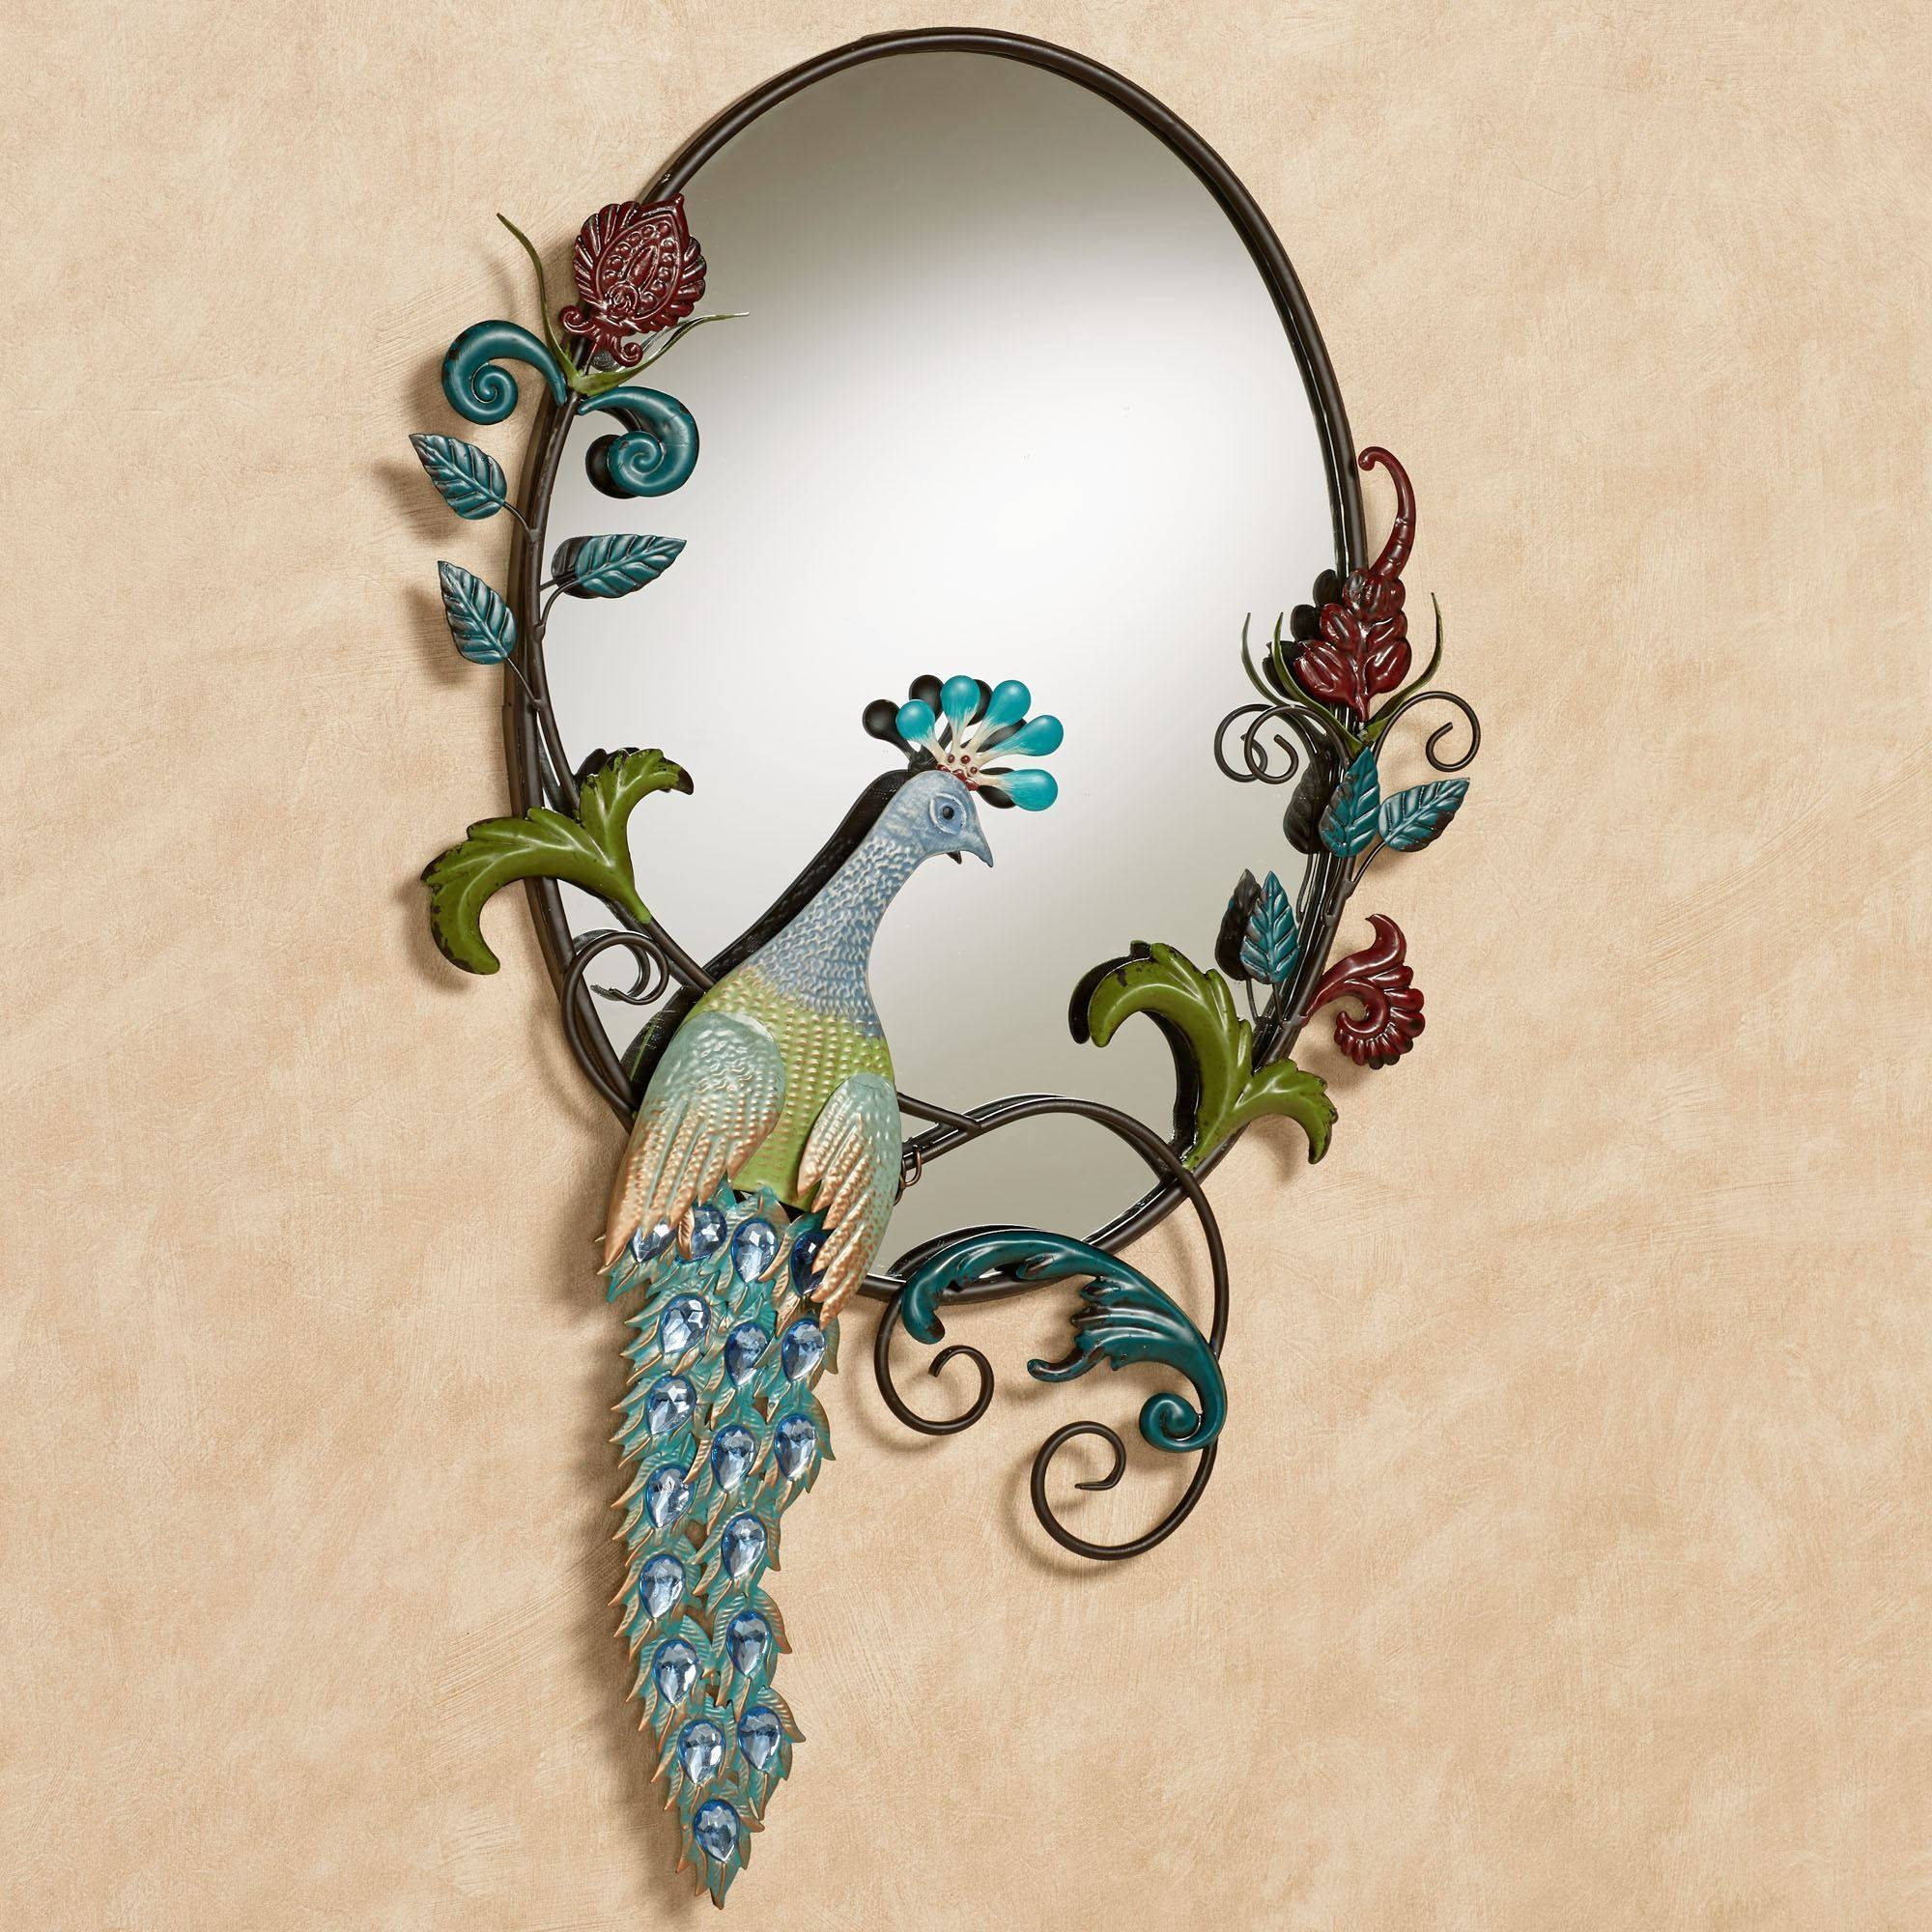 Glorious Jeweled Peacock Wall Mirror Regarding 2017 Jeweled Peacock Wall Art (View 5 of 20)